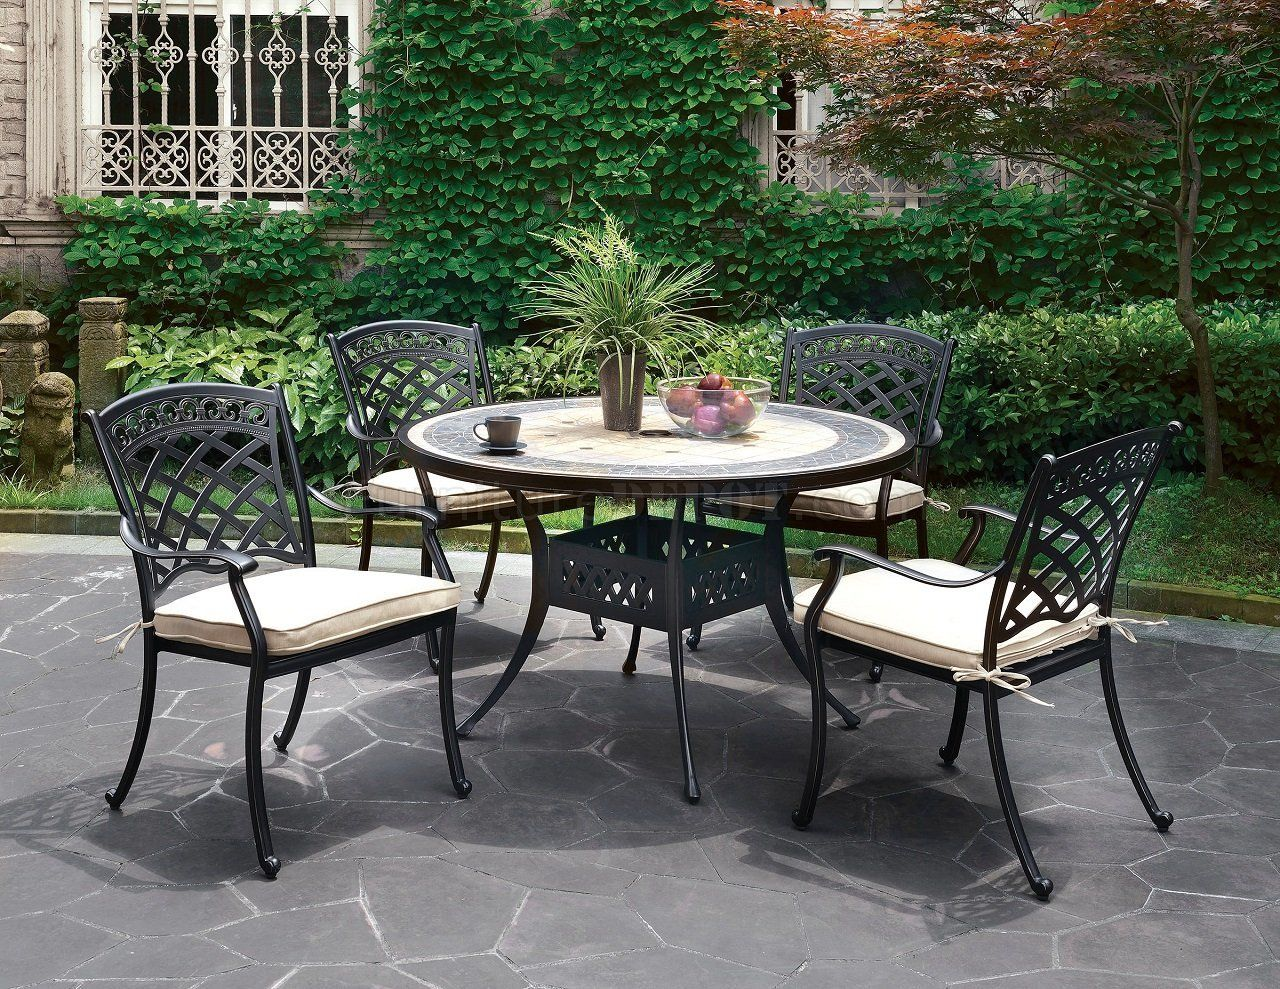 Charissa Outdoor Furniture Patio Table Set Cm Ot2125 Round Patio